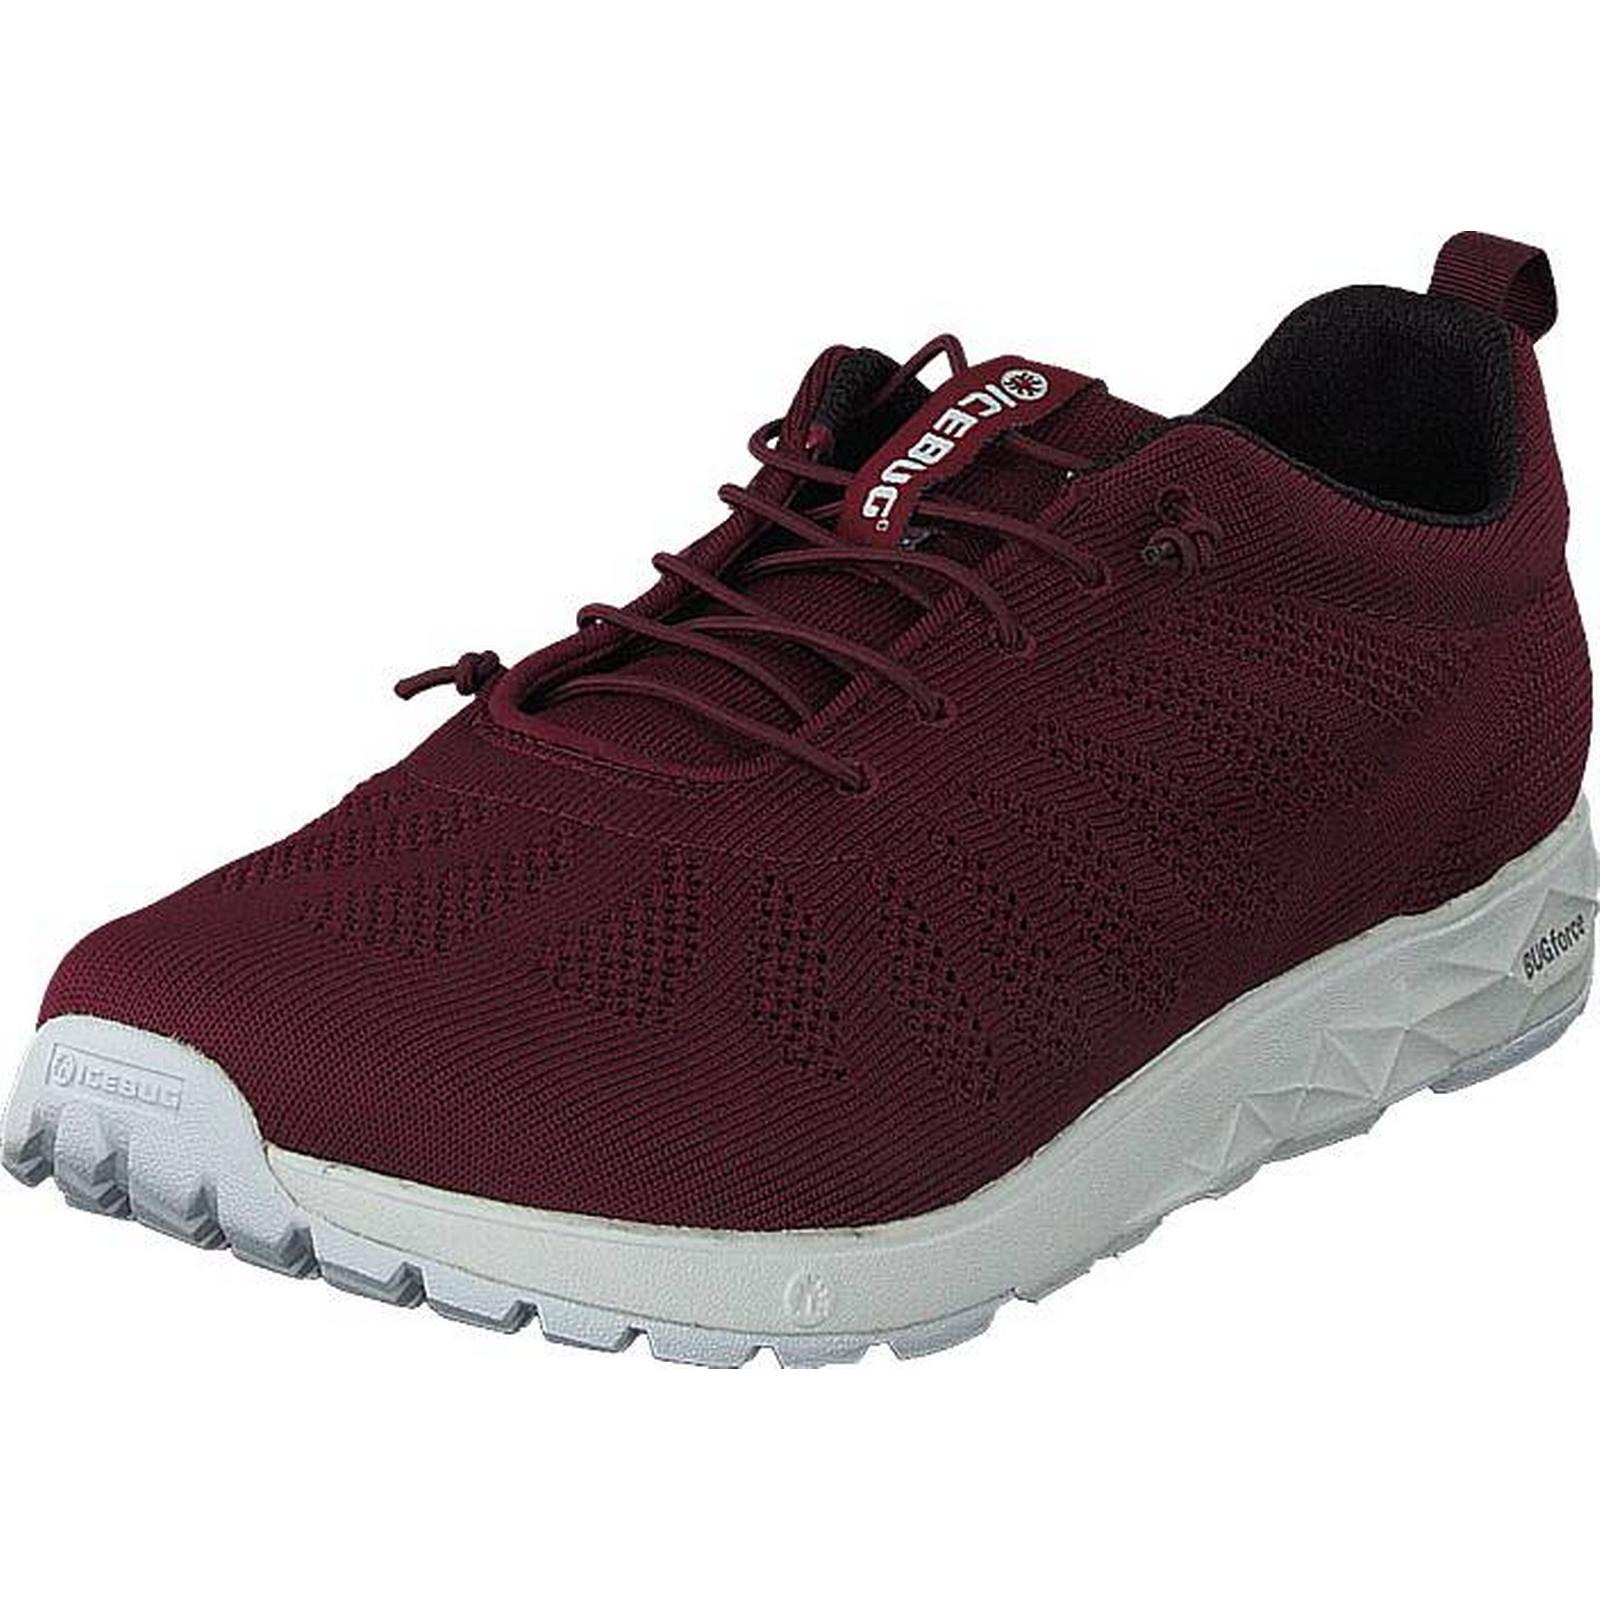 Icebug Eli W RB9X Crimson, Shoes, Trainers & Sport Sport & Shoes , Trainers, Purple, Female, 40 8def44